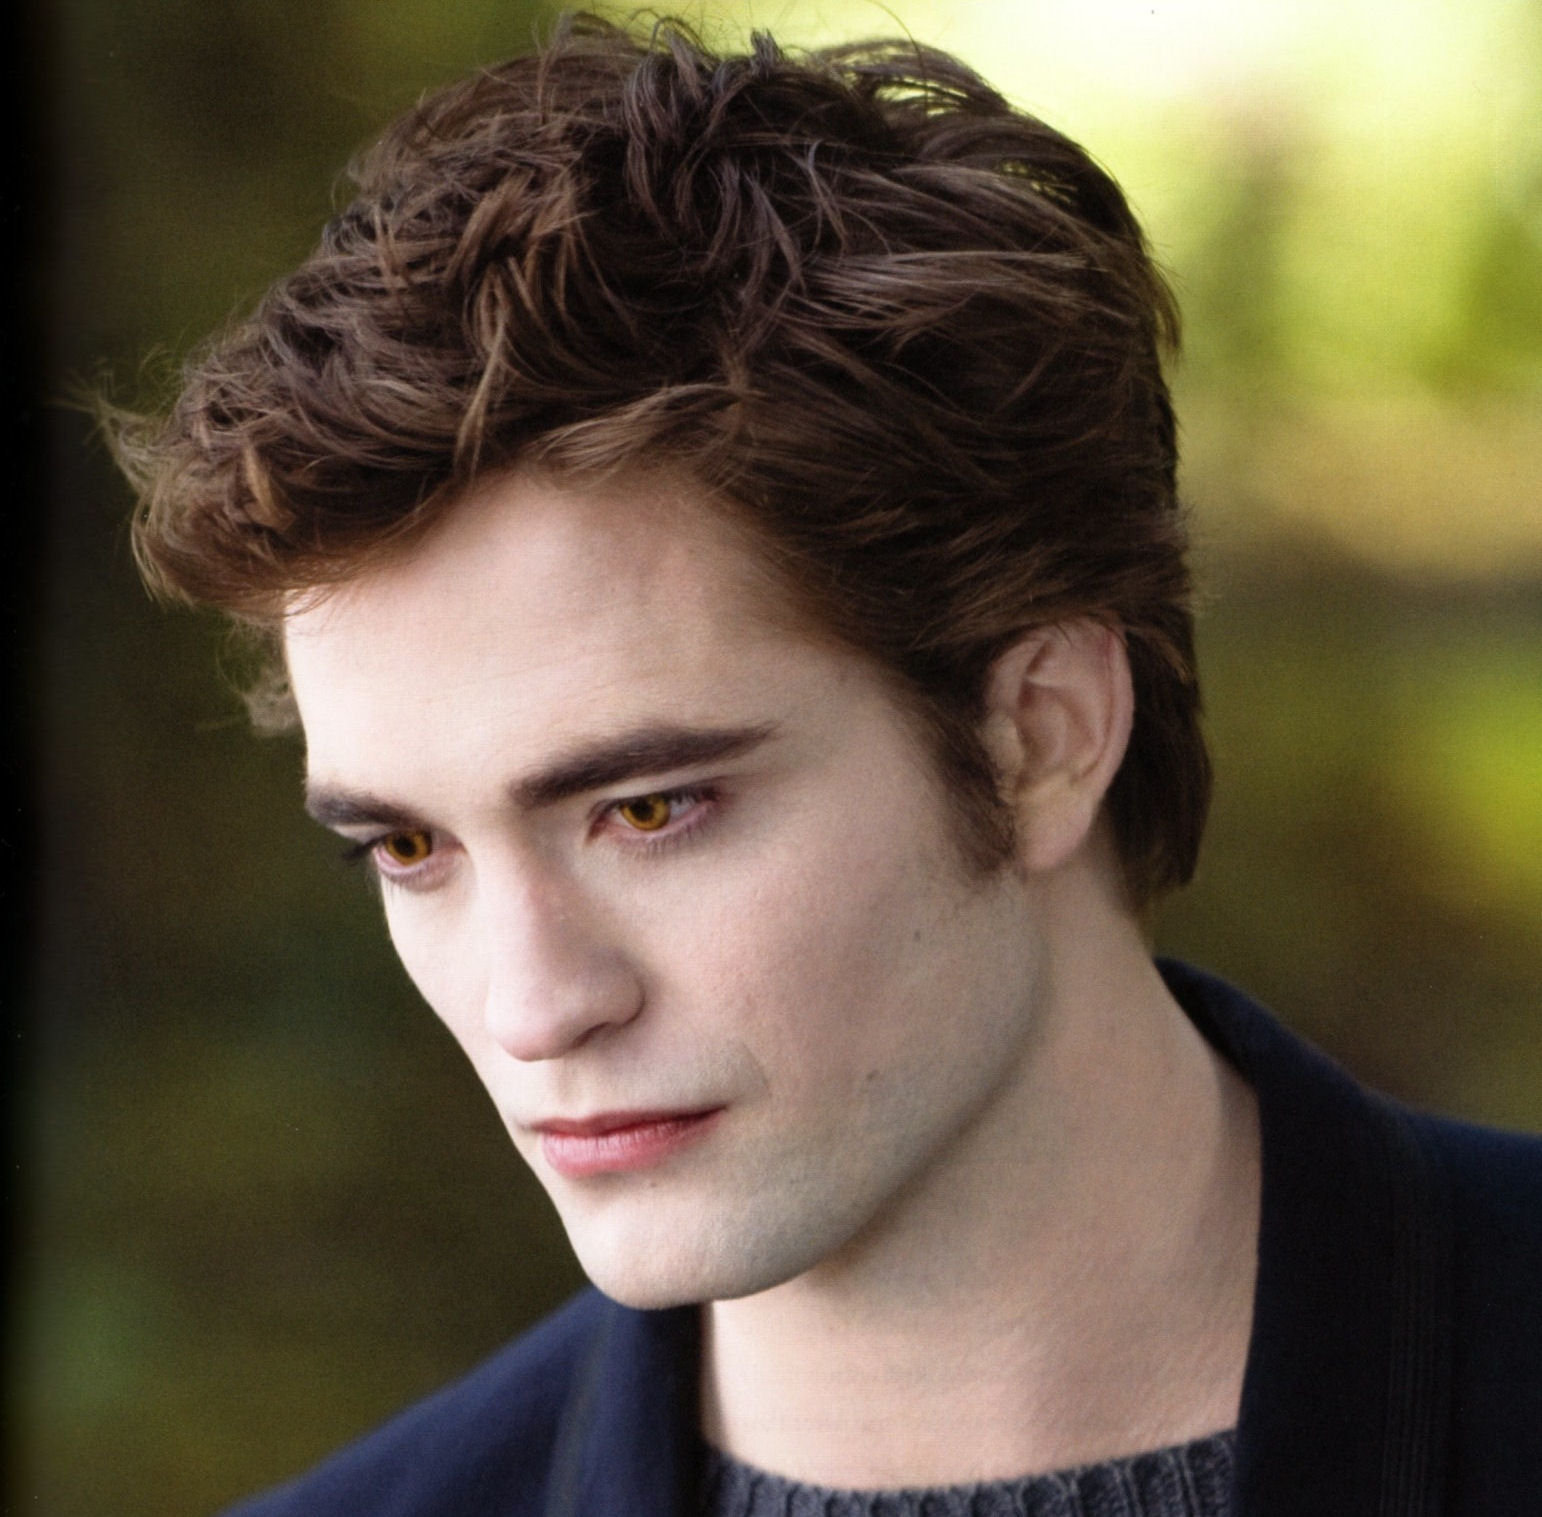 Edward - Edward Cullen Photo (27673809) - Fanpop